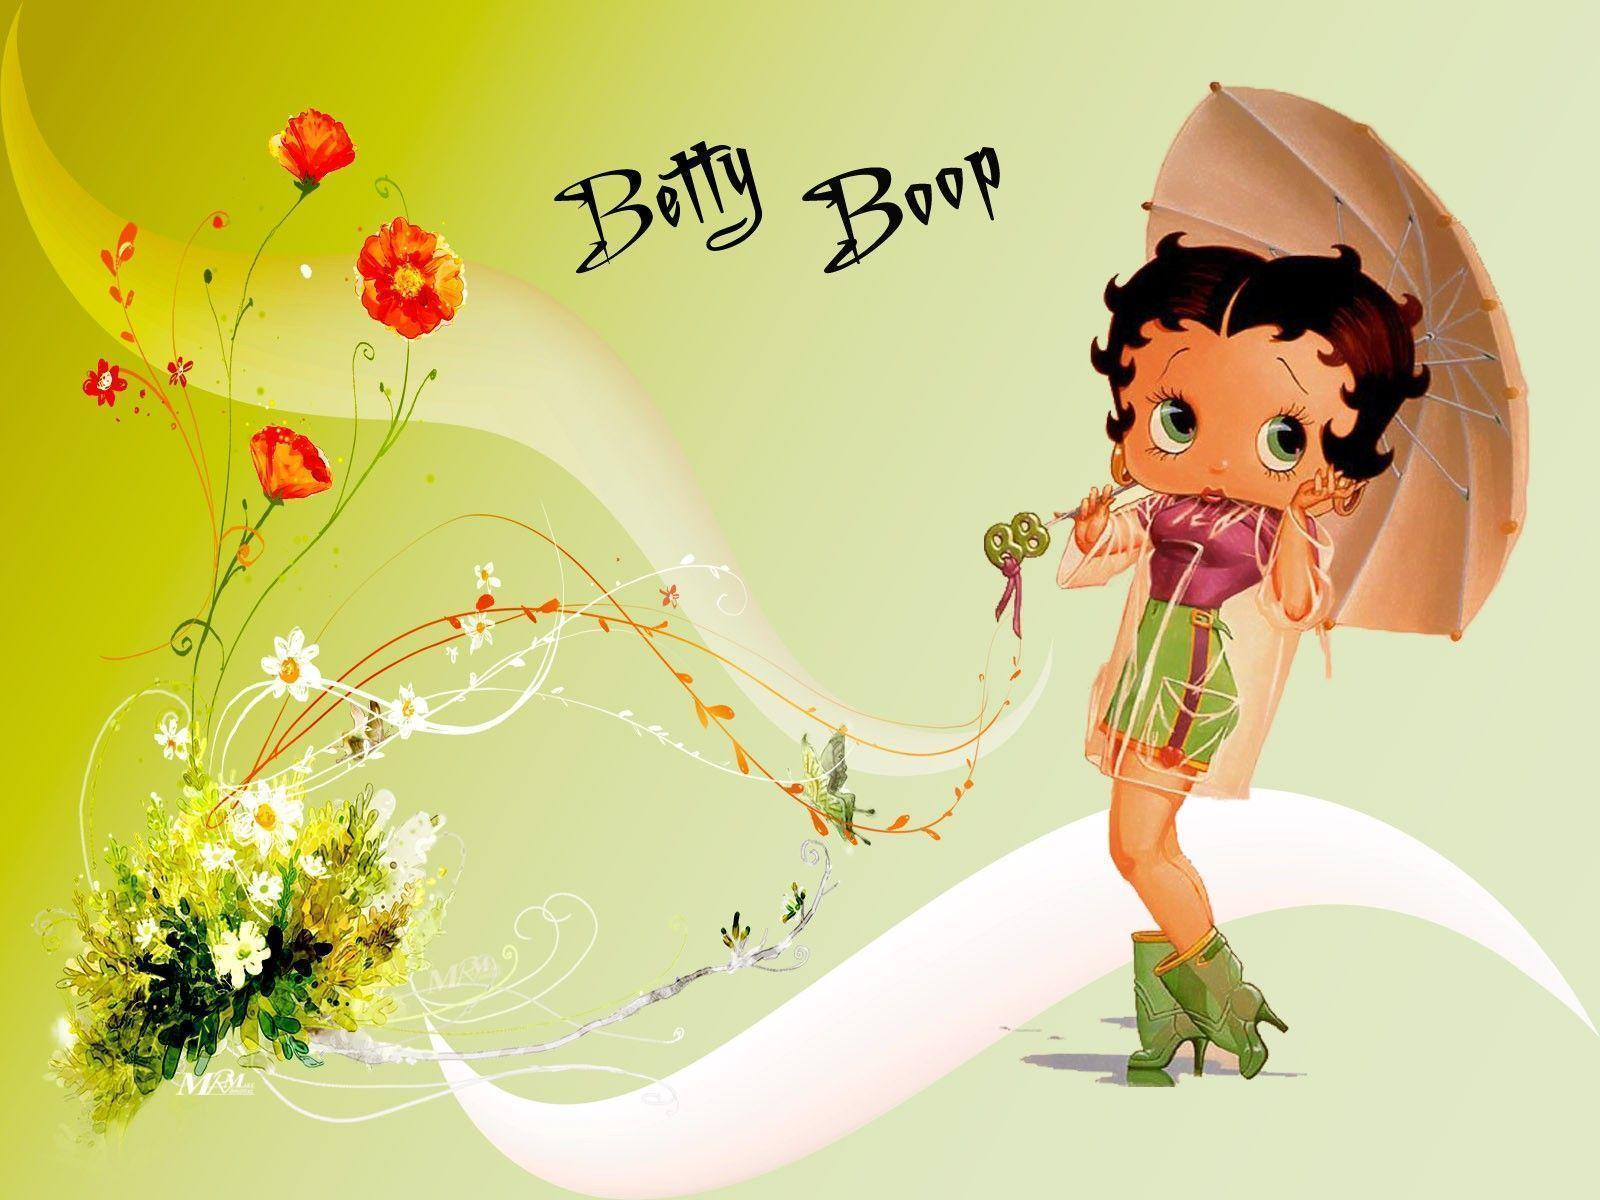 Betty Boop Hd Wallpapers Wallpaper Cave